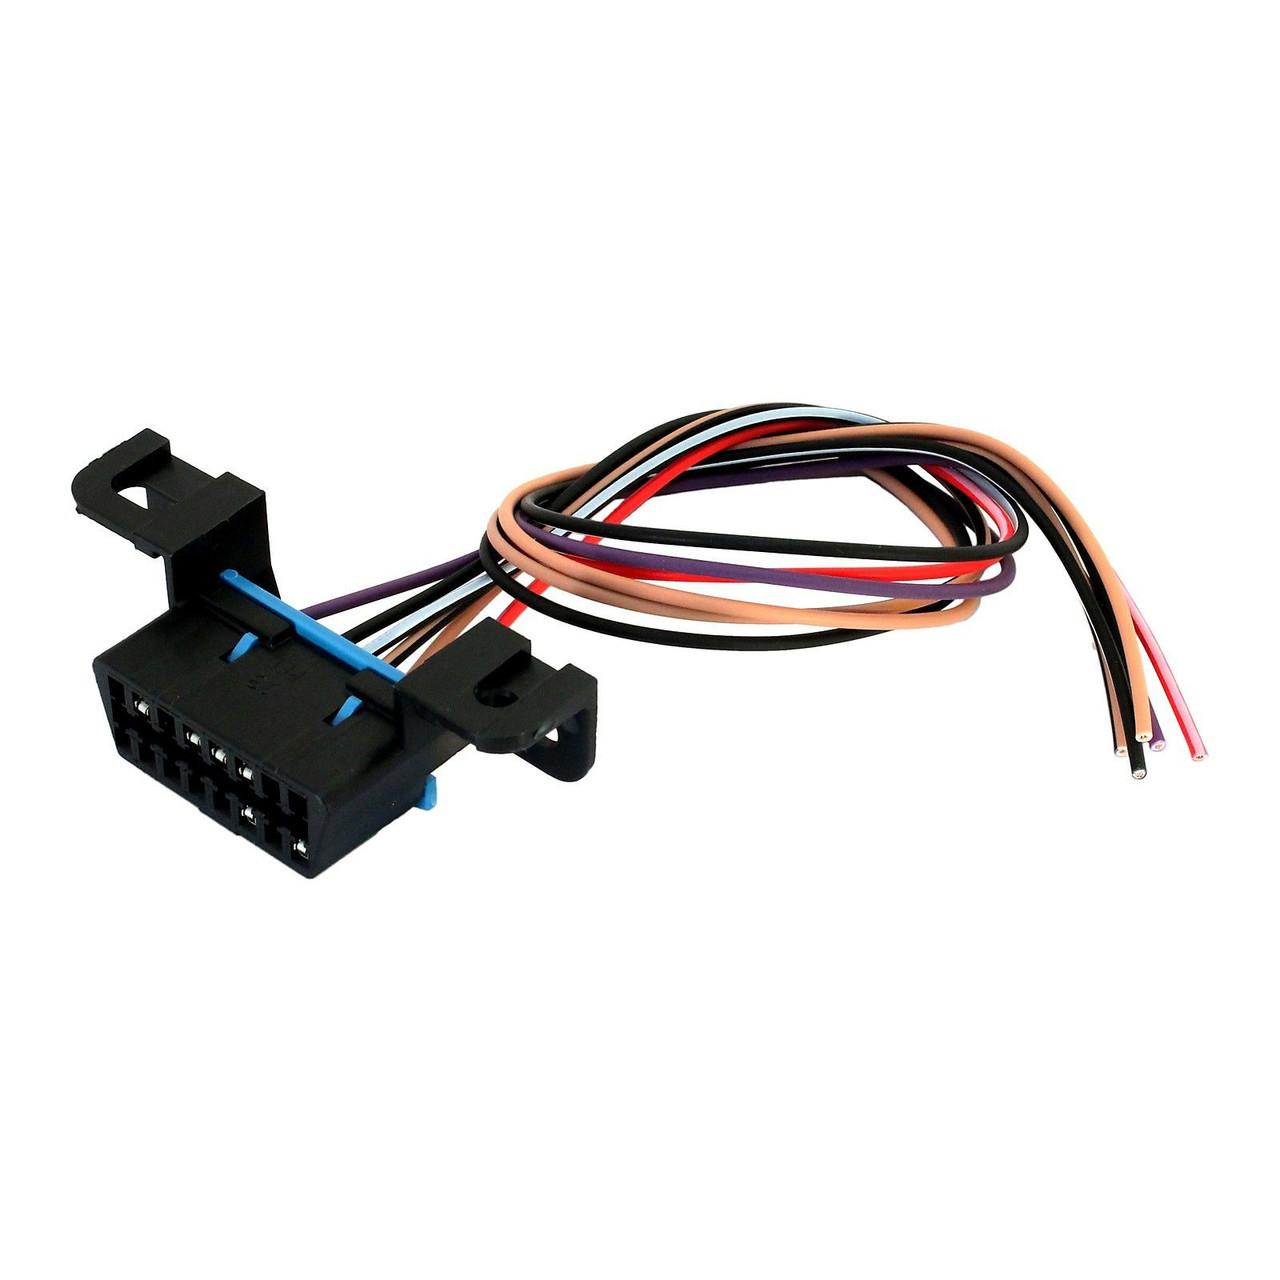 hight resolution of obdii obd2 j1962 class 2 can bus wiring harness connector pigtail16p conn dlc can pt f 10644